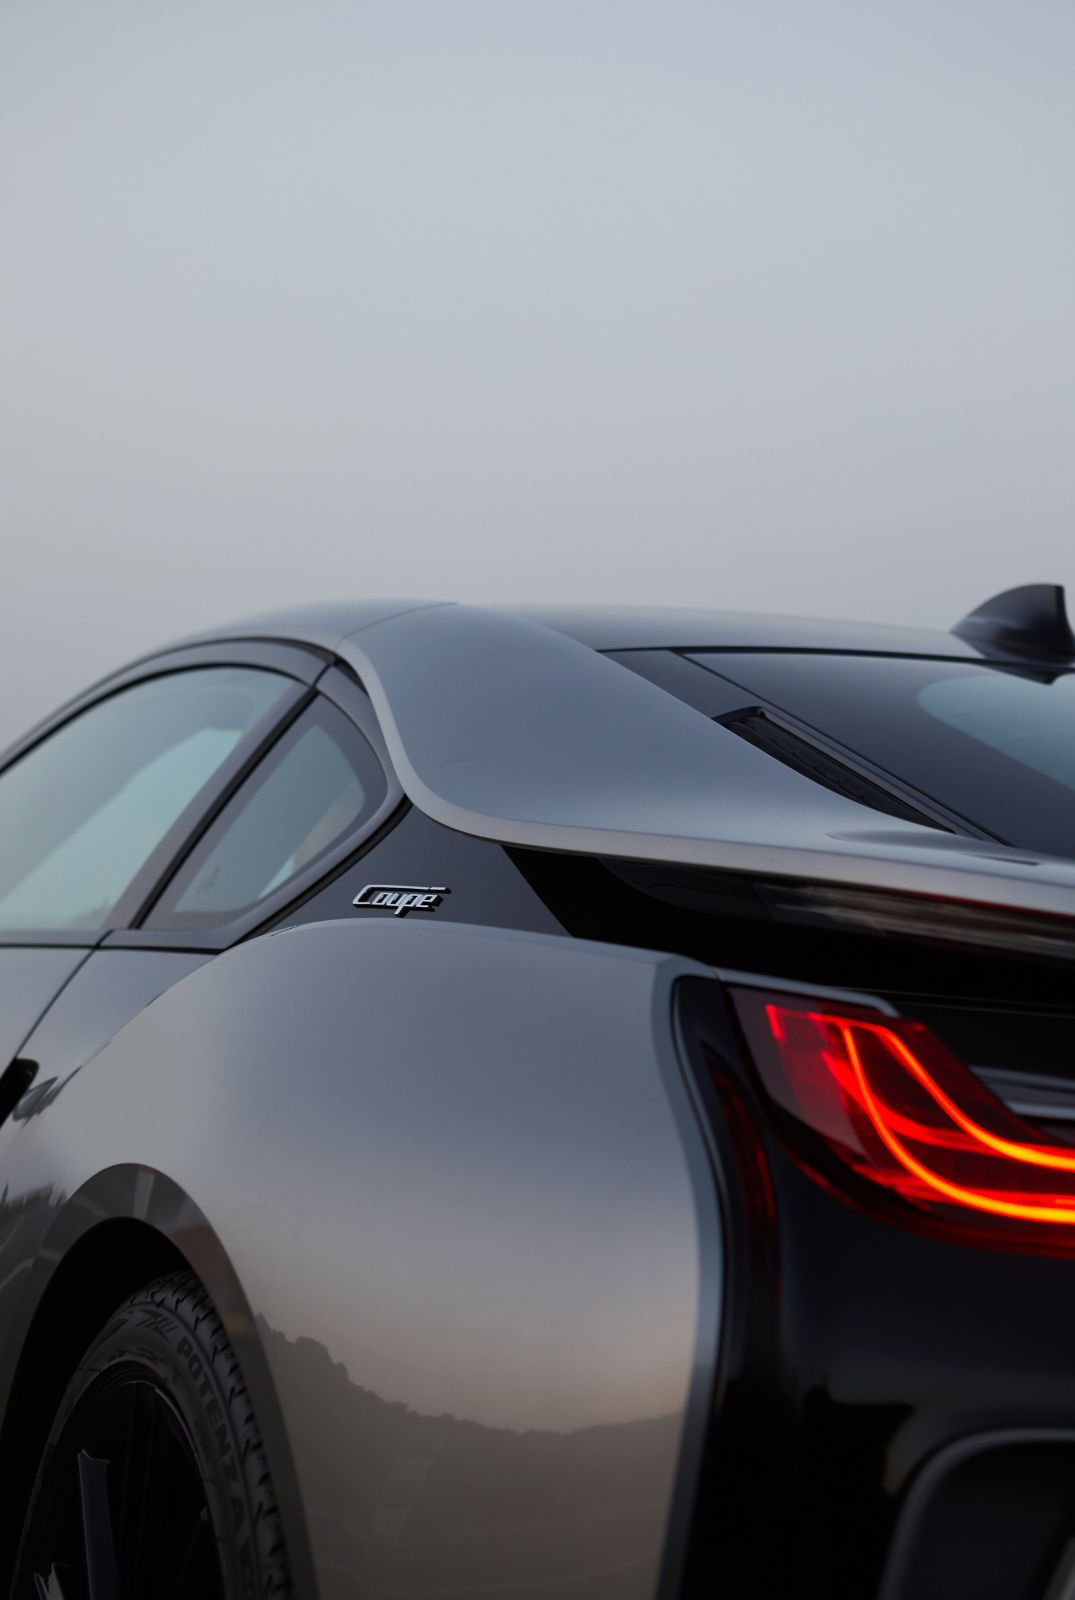 Bmw I8 Da As Caras Em Detroit Com Leves Modificacoes Noticias